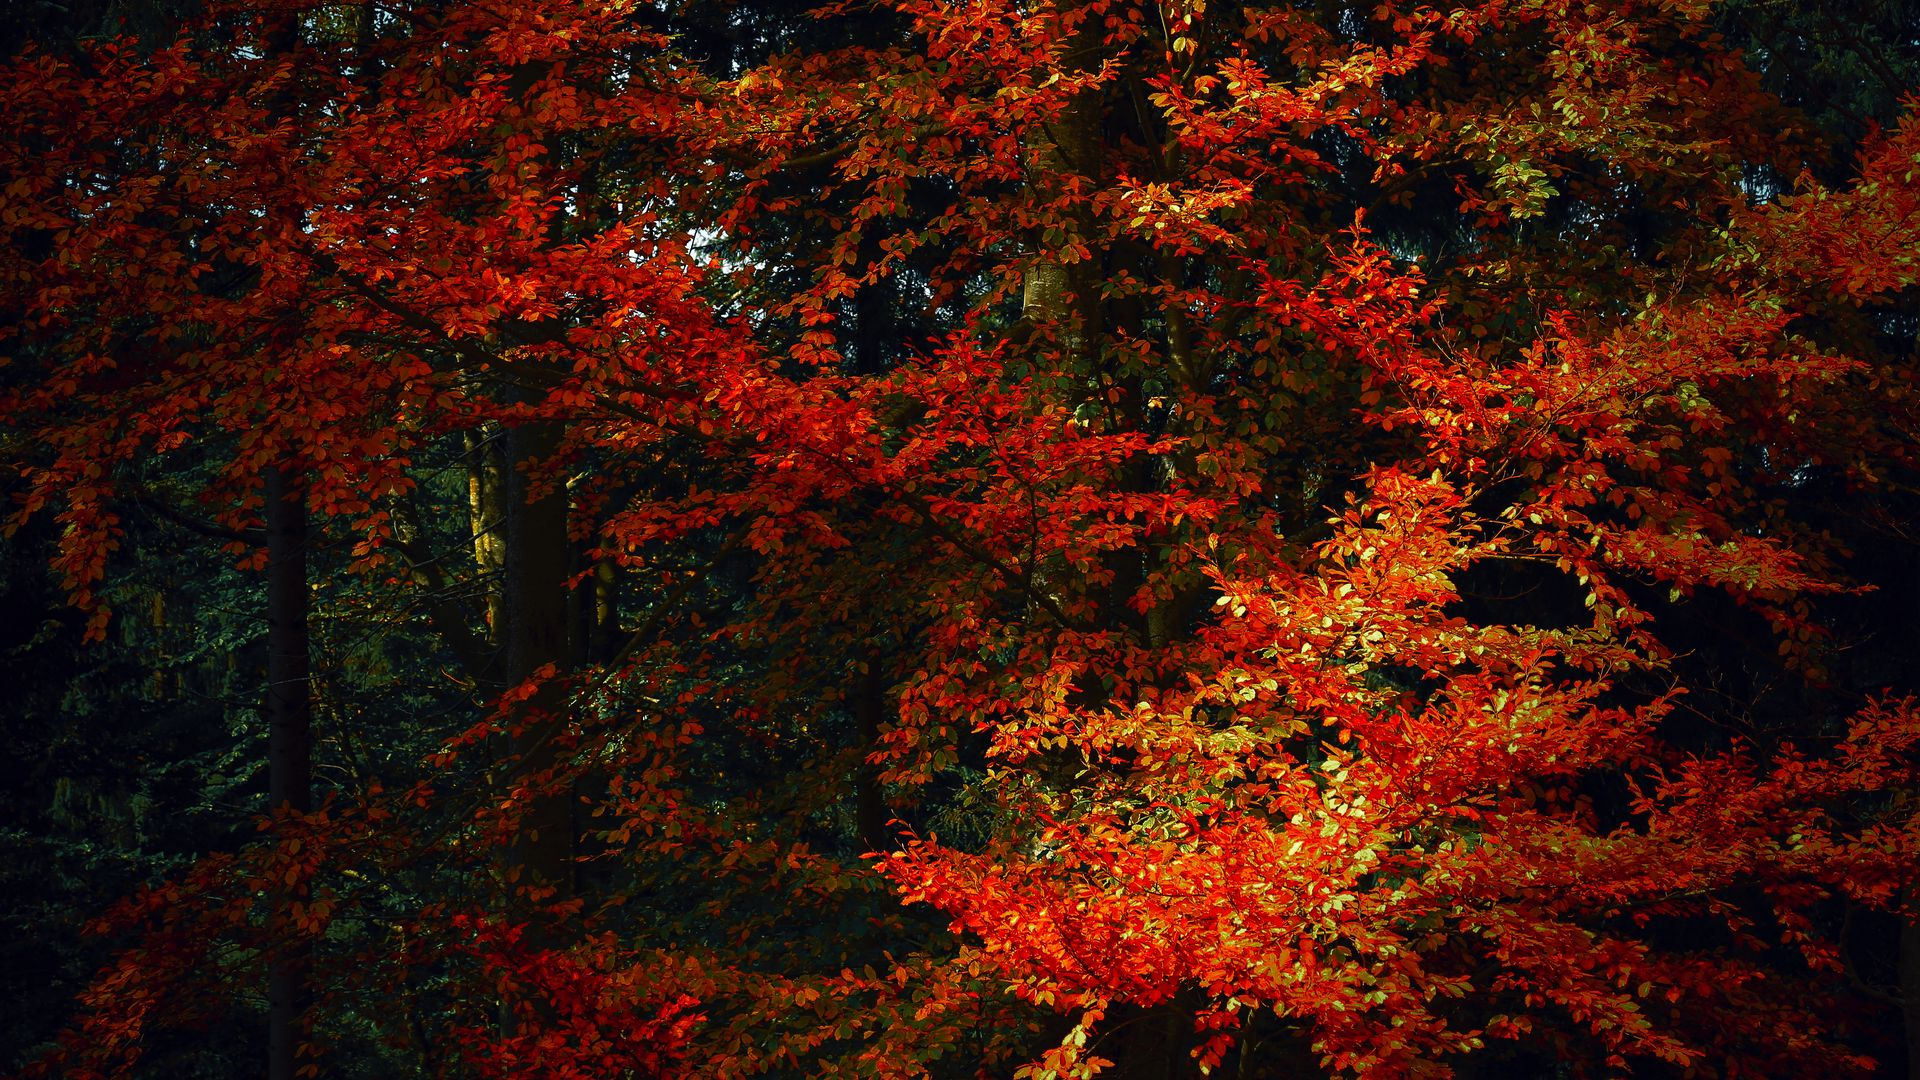 Fall Leaves Wallpaper – 3d's Pictures of Autumn Leaves on Desktop Picture designs